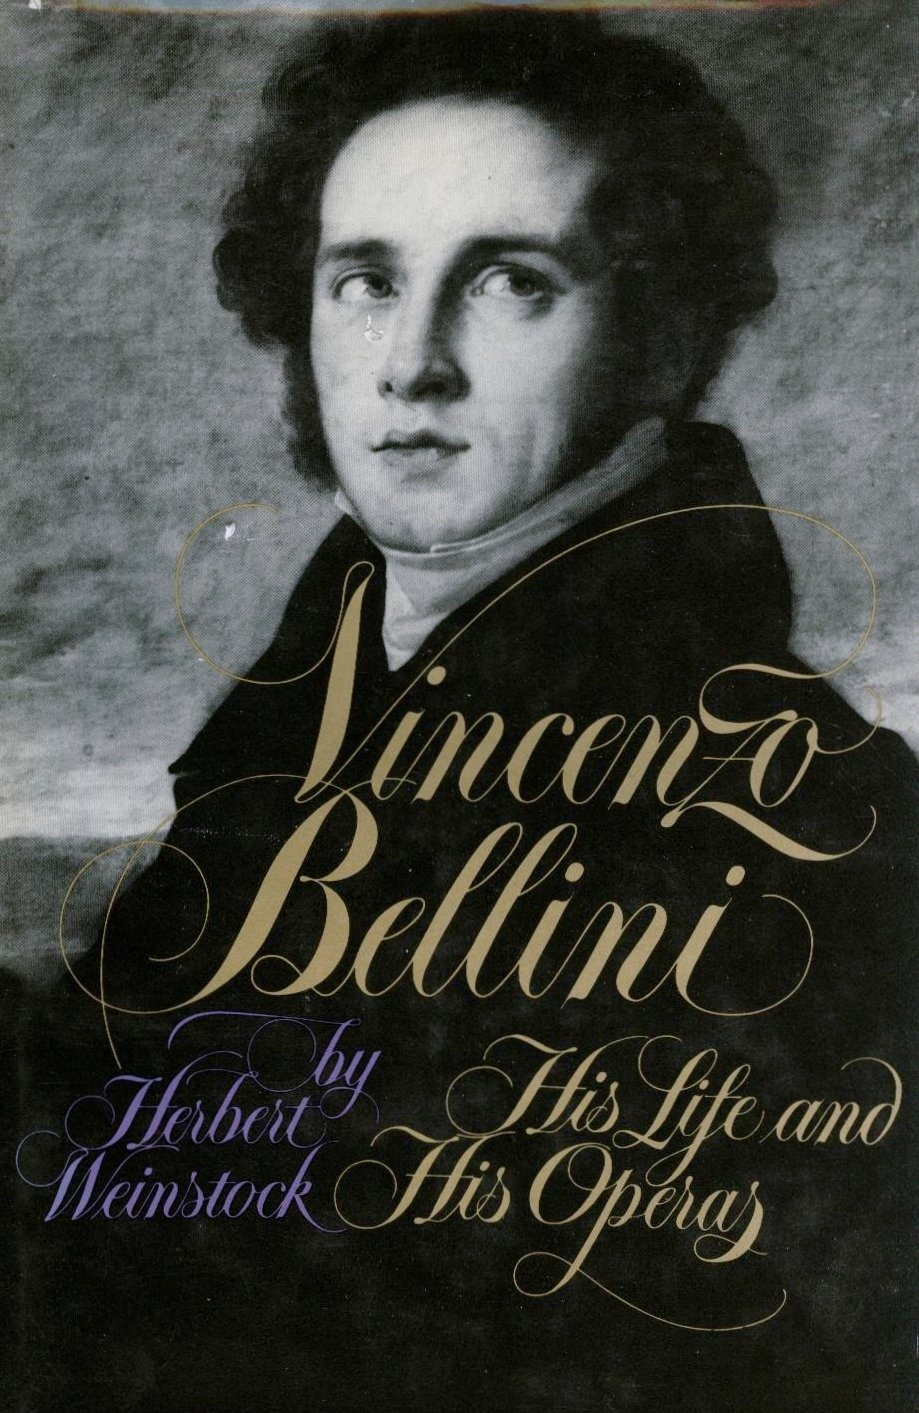 ist musicale v bellini biography